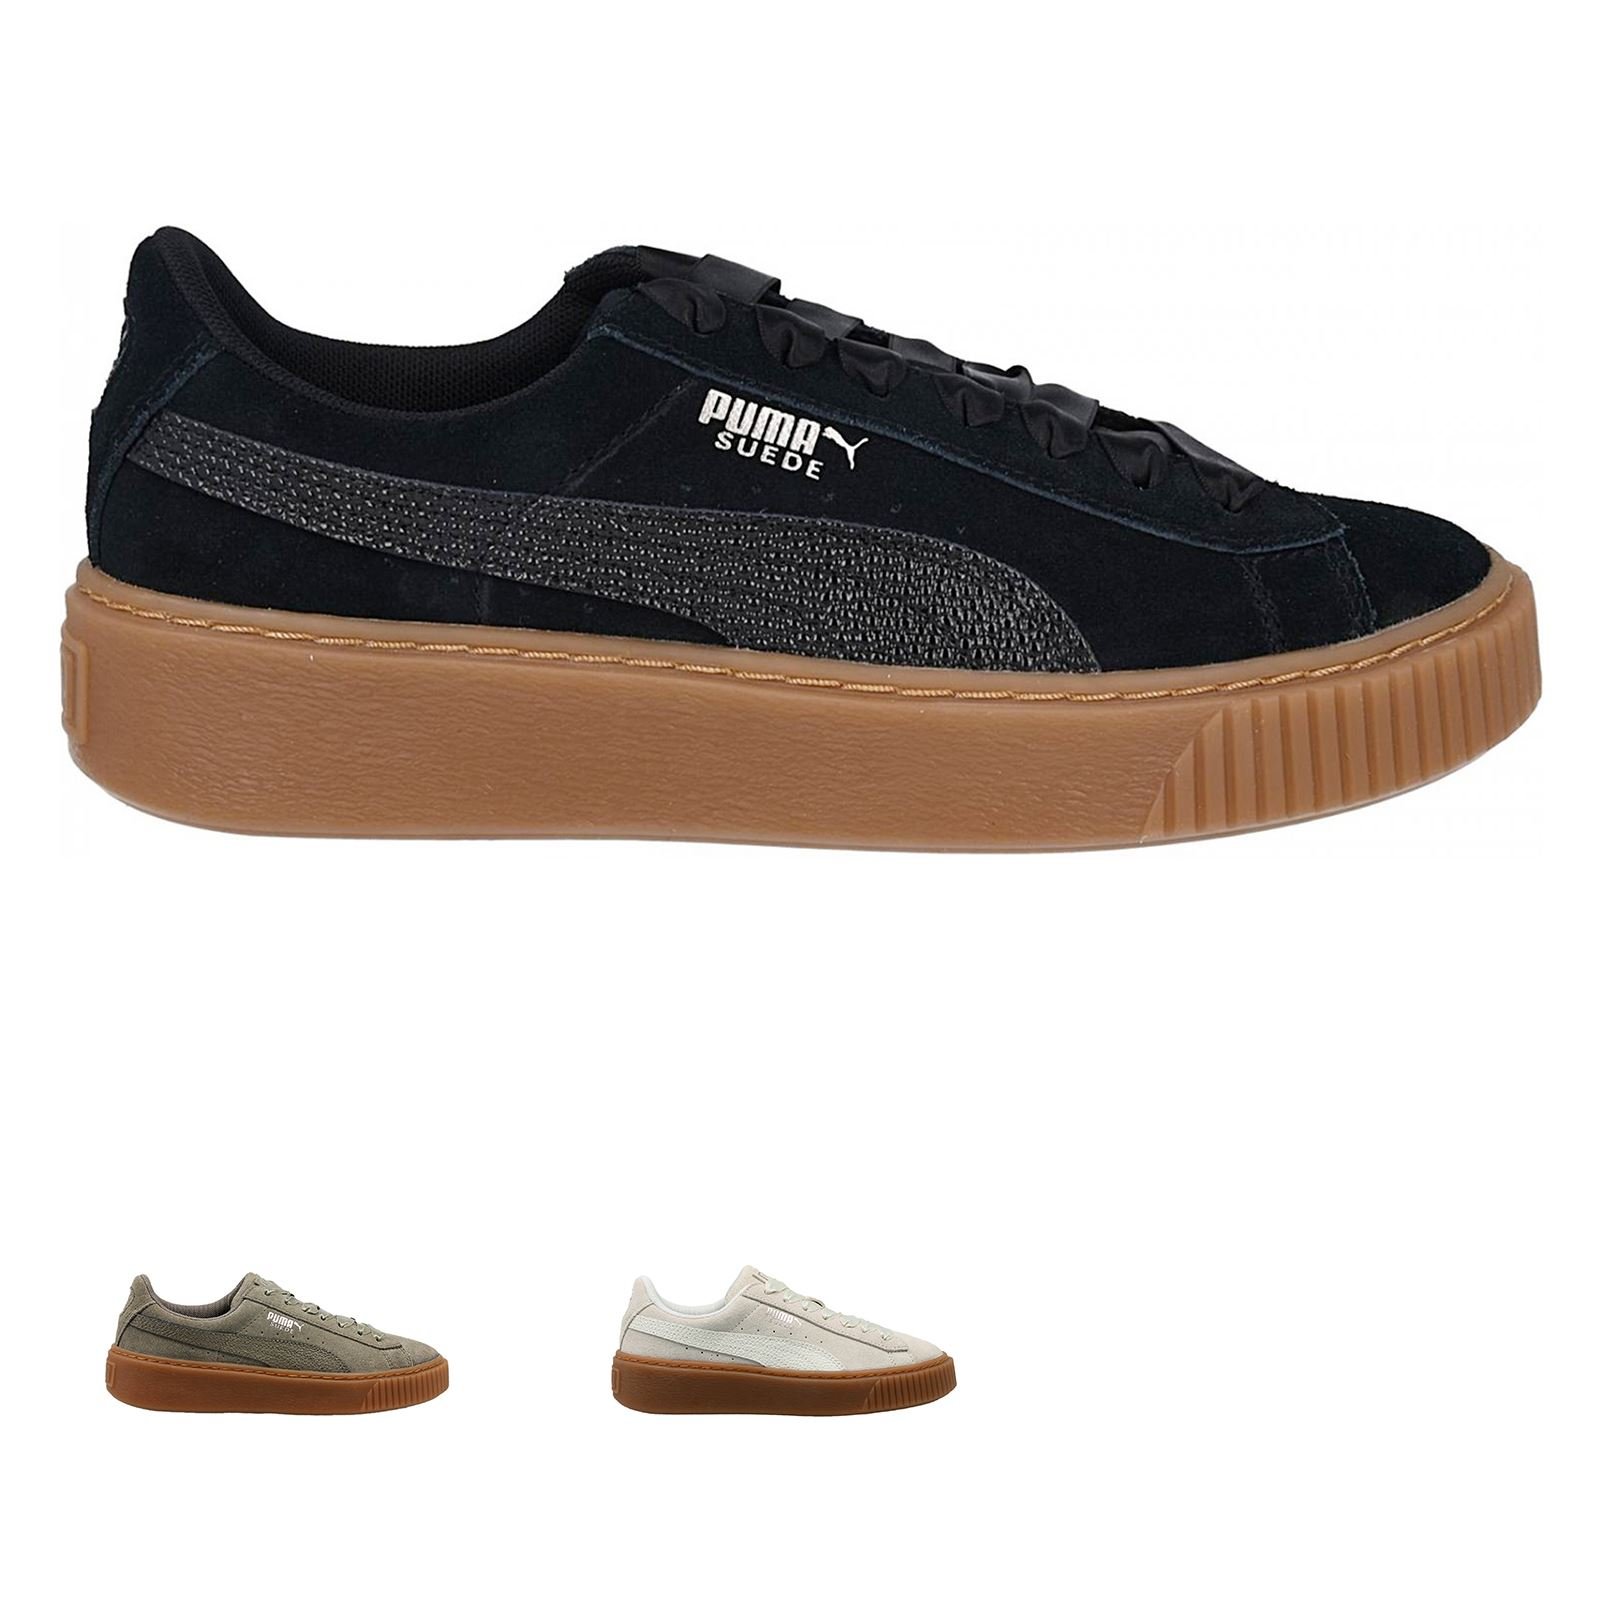 6e3f2e463aaa Puma Suede Platform Bubbles Wns Suede Low-top Lace-up Sneakers ...